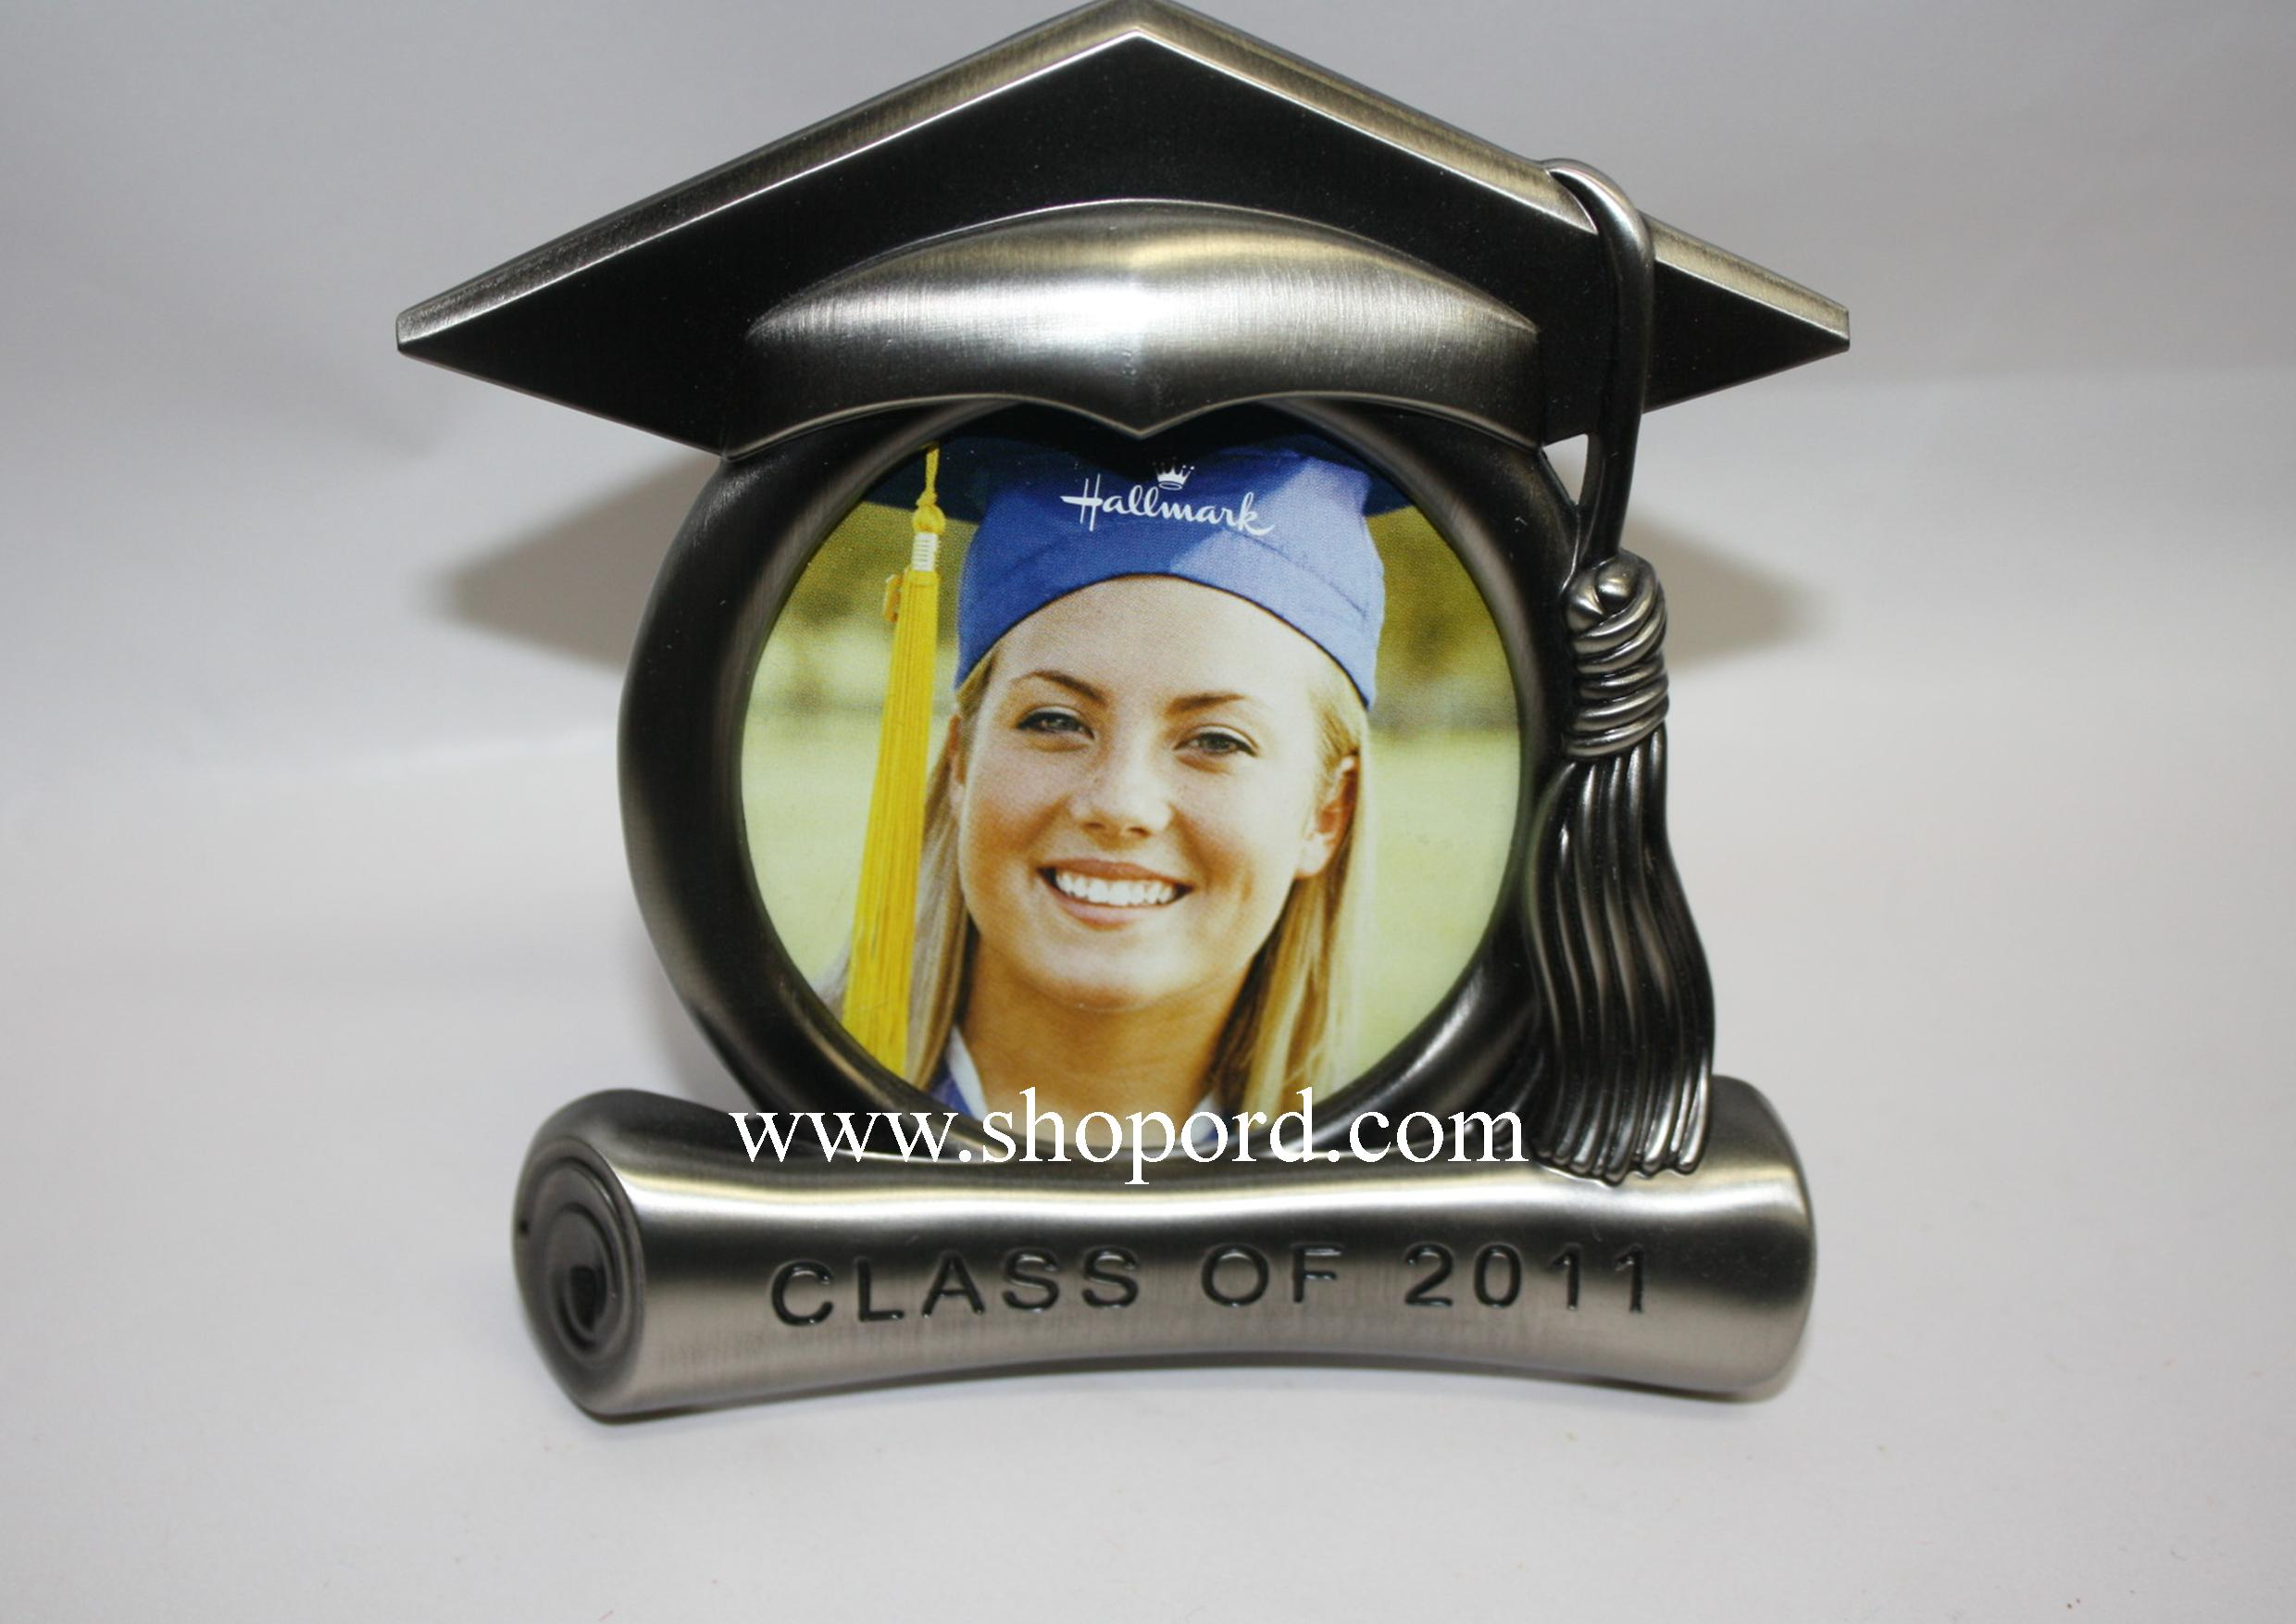 hallmark class of 2011 graduation cap frame 1gdf1124. Black Bedroom Furniture Sets. Home Design Ideas